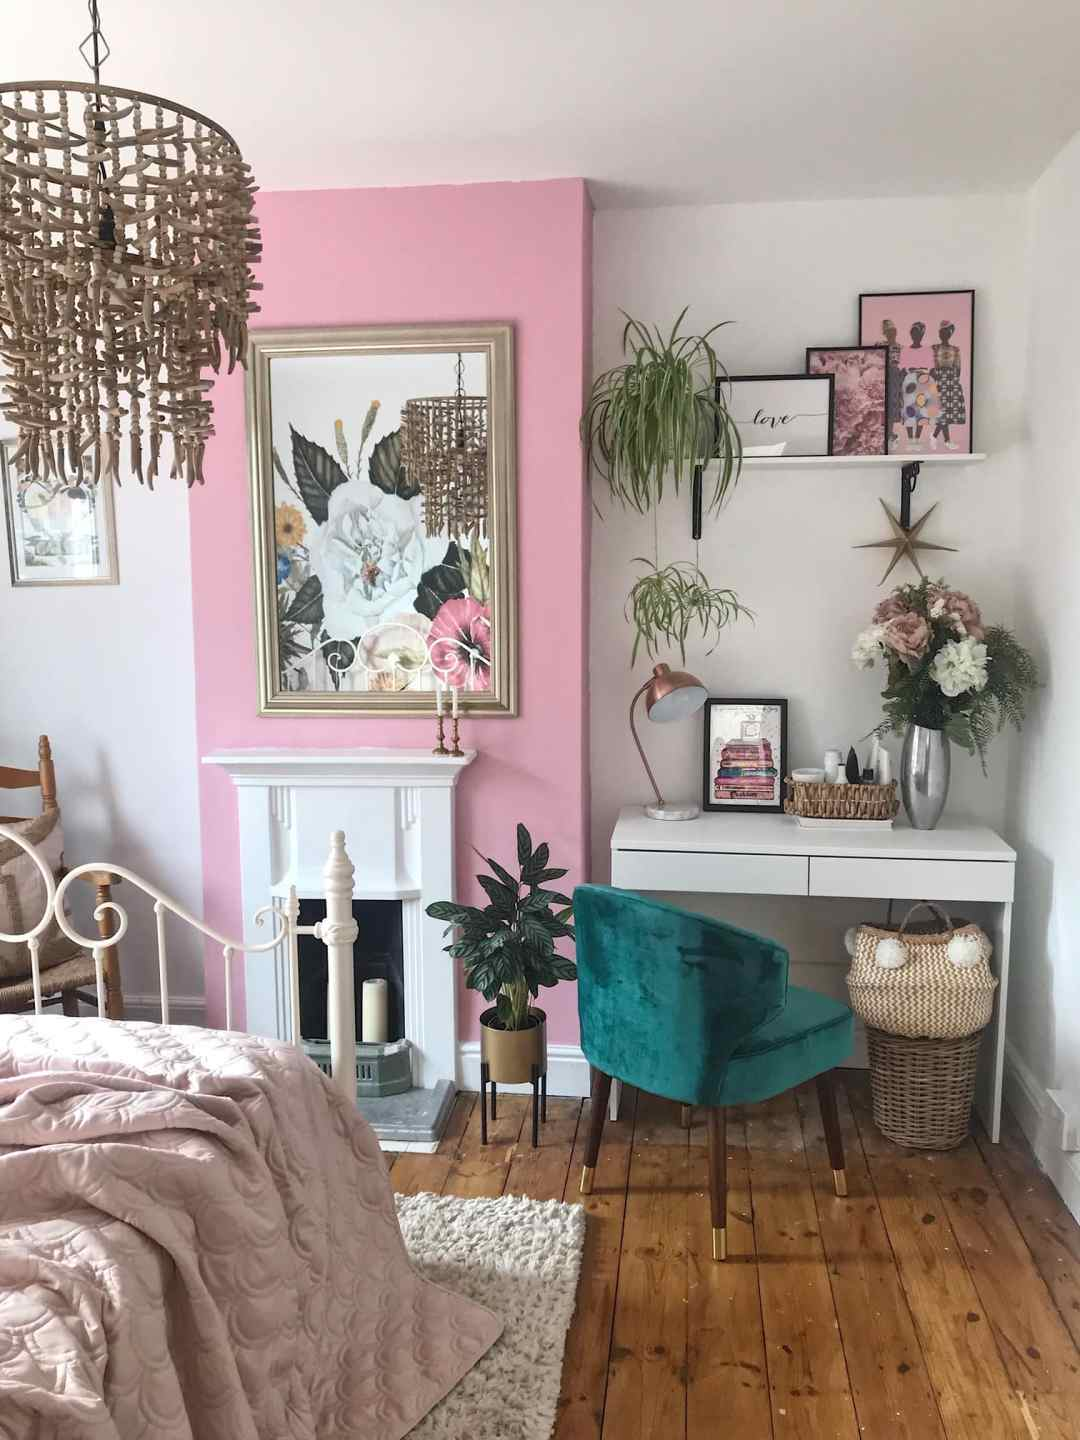 Updating our Bedroom With Valspar Pink Paint